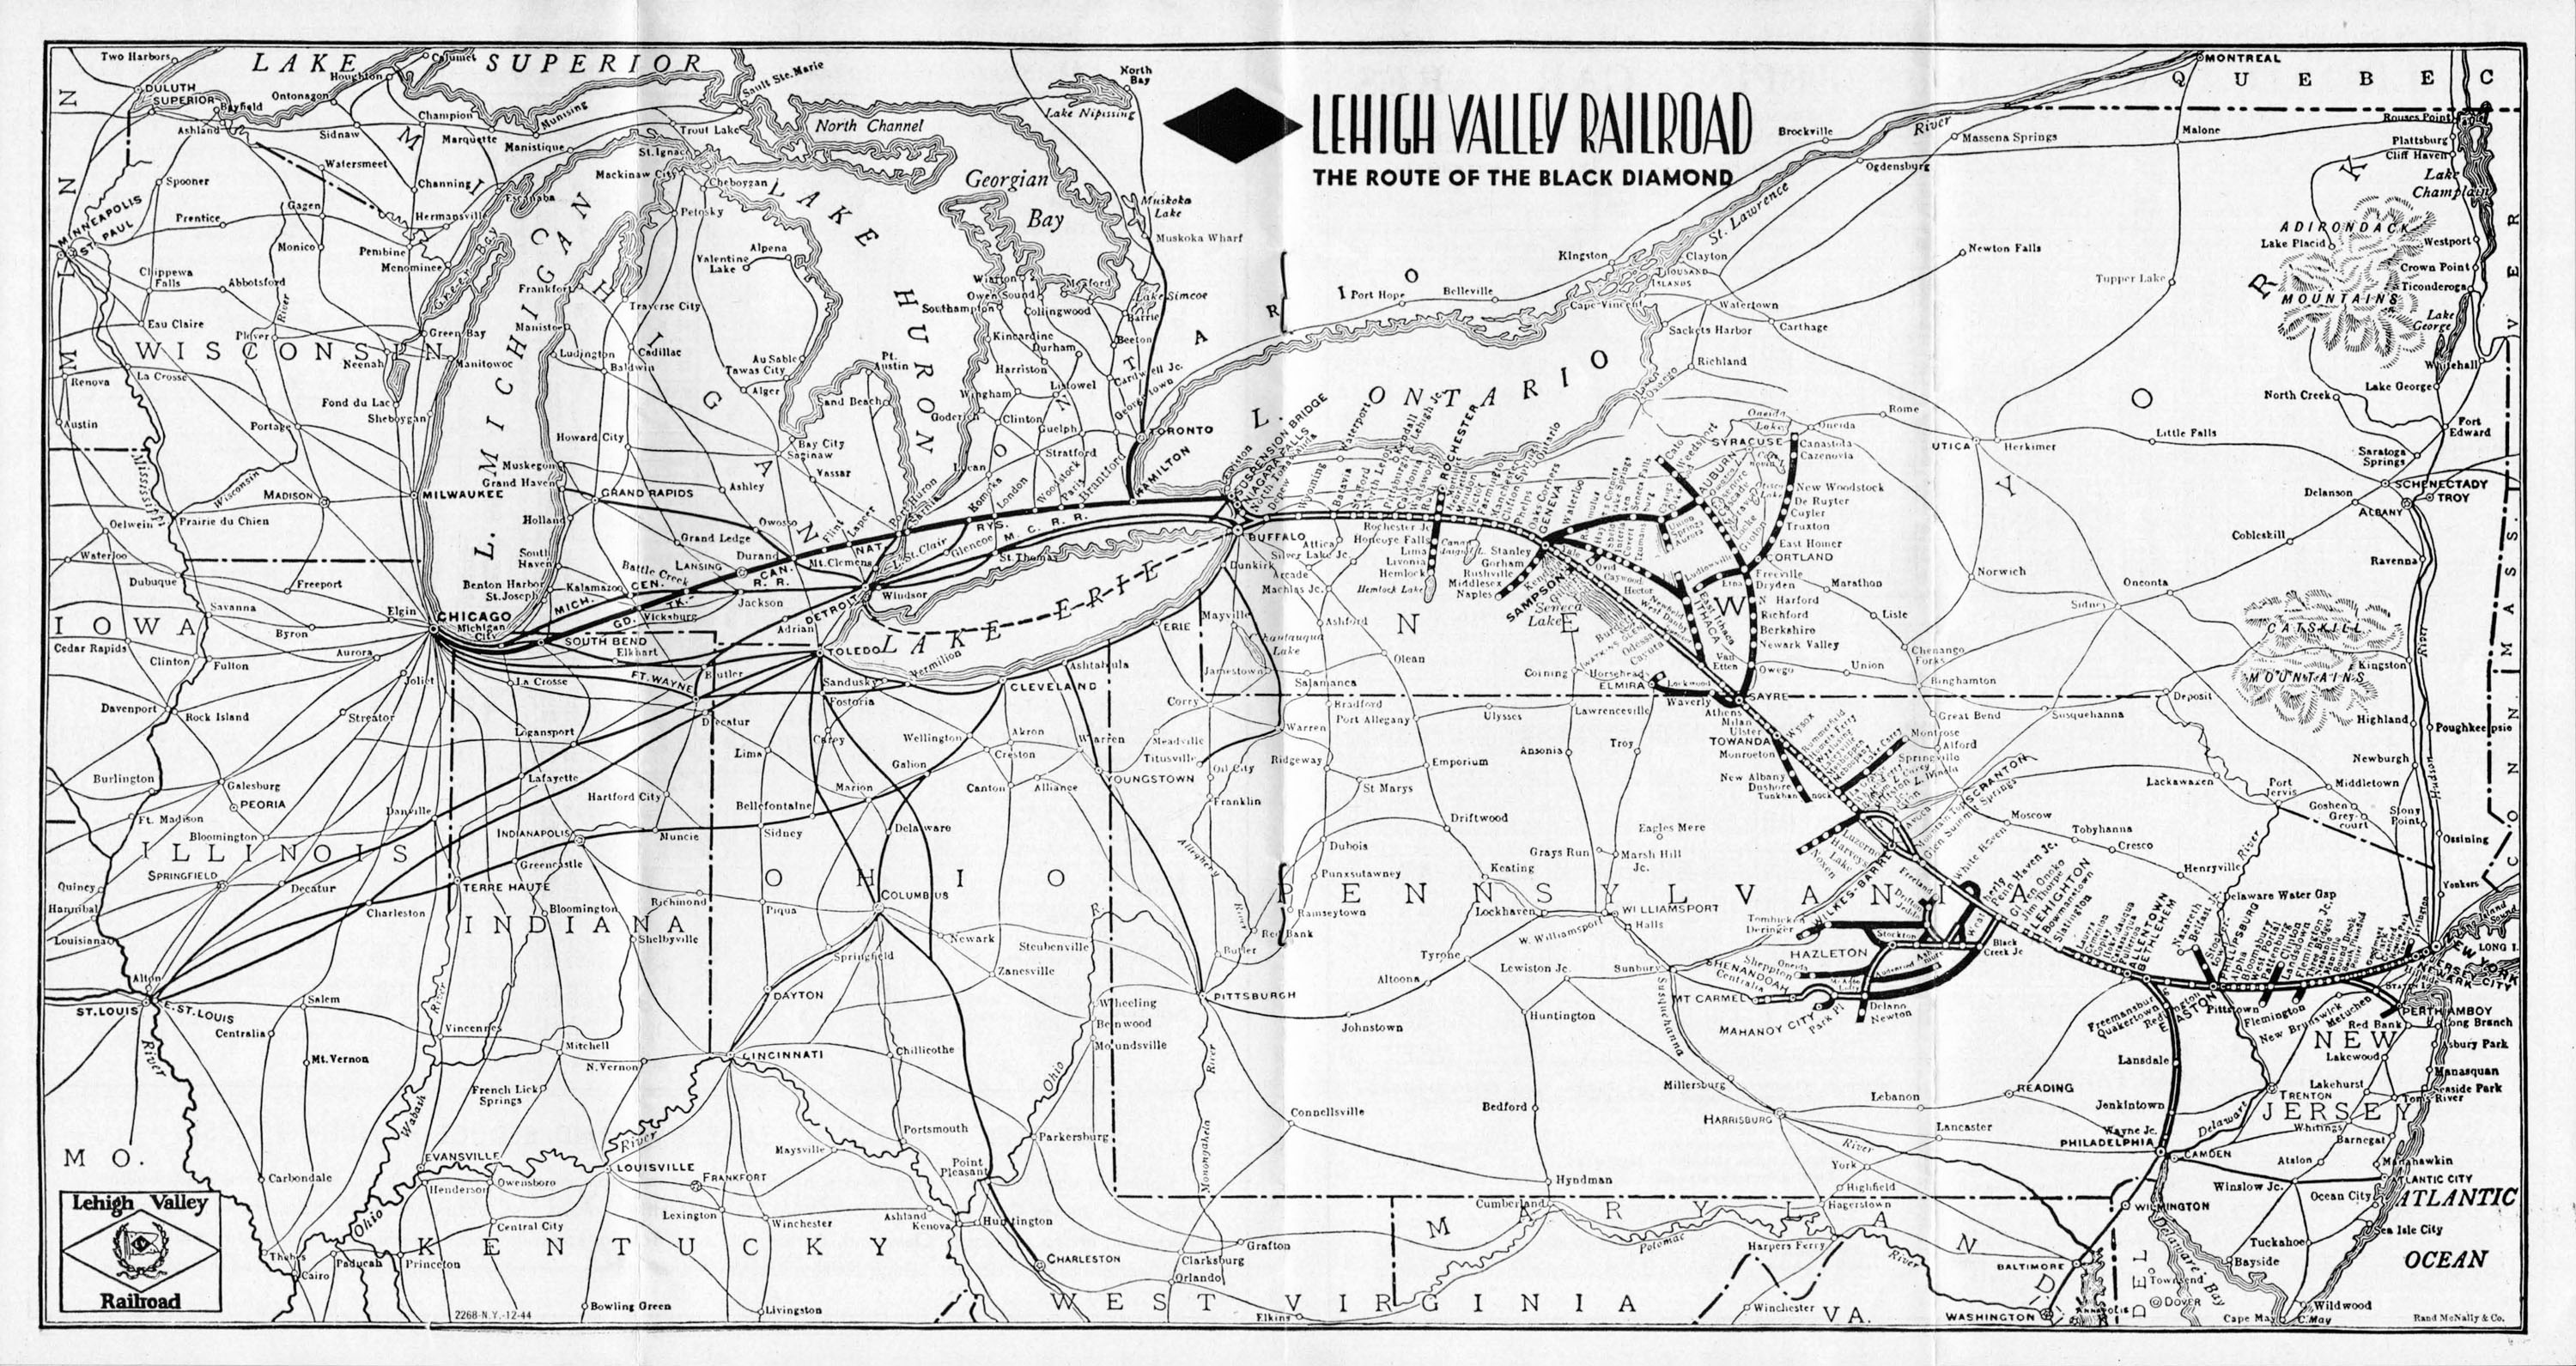 The Lehigh Valley Railroad - Us railroad traffic map